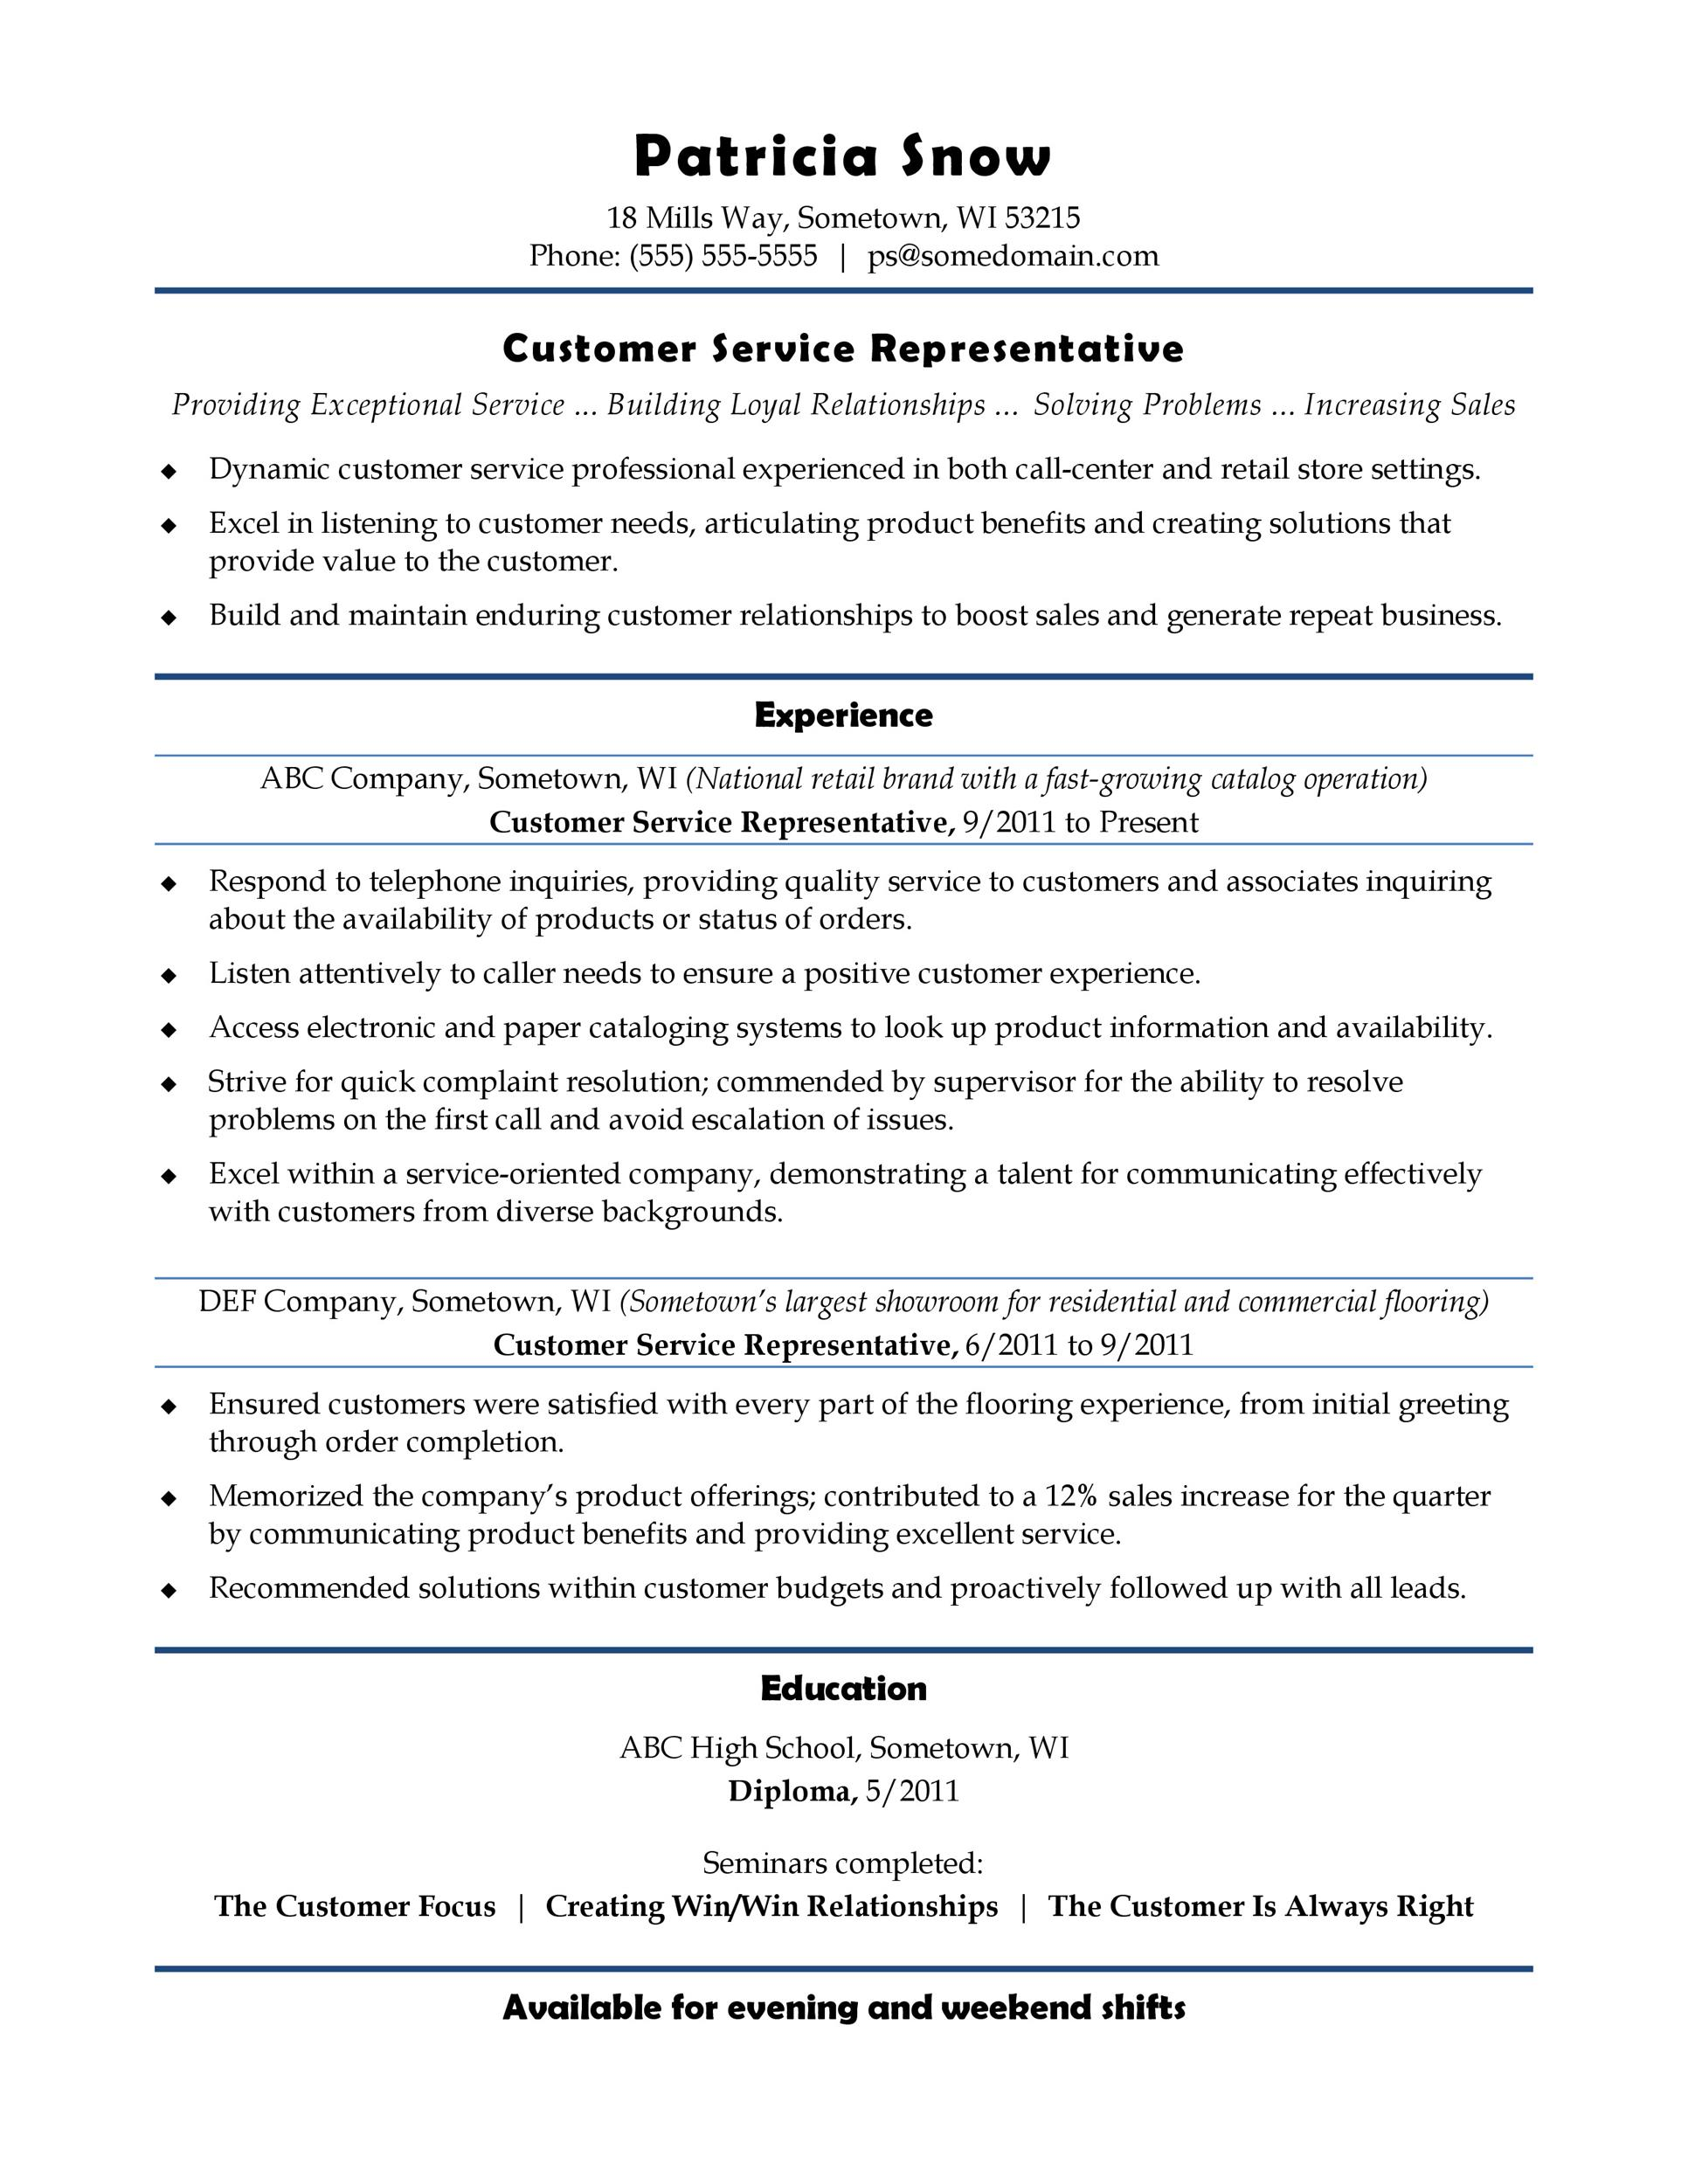 sample customer service resume objective pdf template representative skills